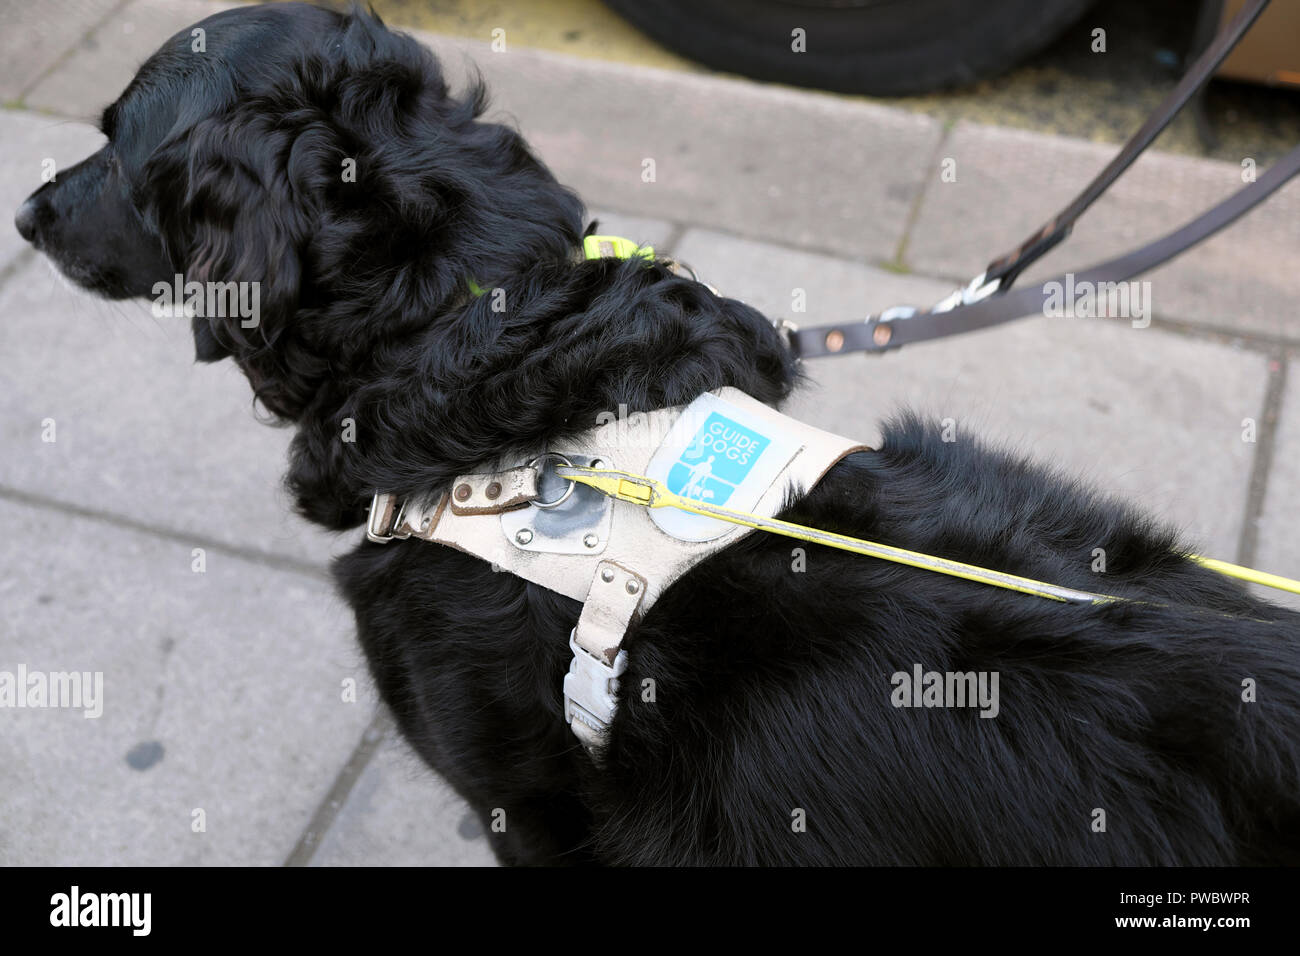 Black Guide Dog for the Blind wearing a harness waiting patiently in the street for a bus  UK  KATHY DEWITT - Stock Image